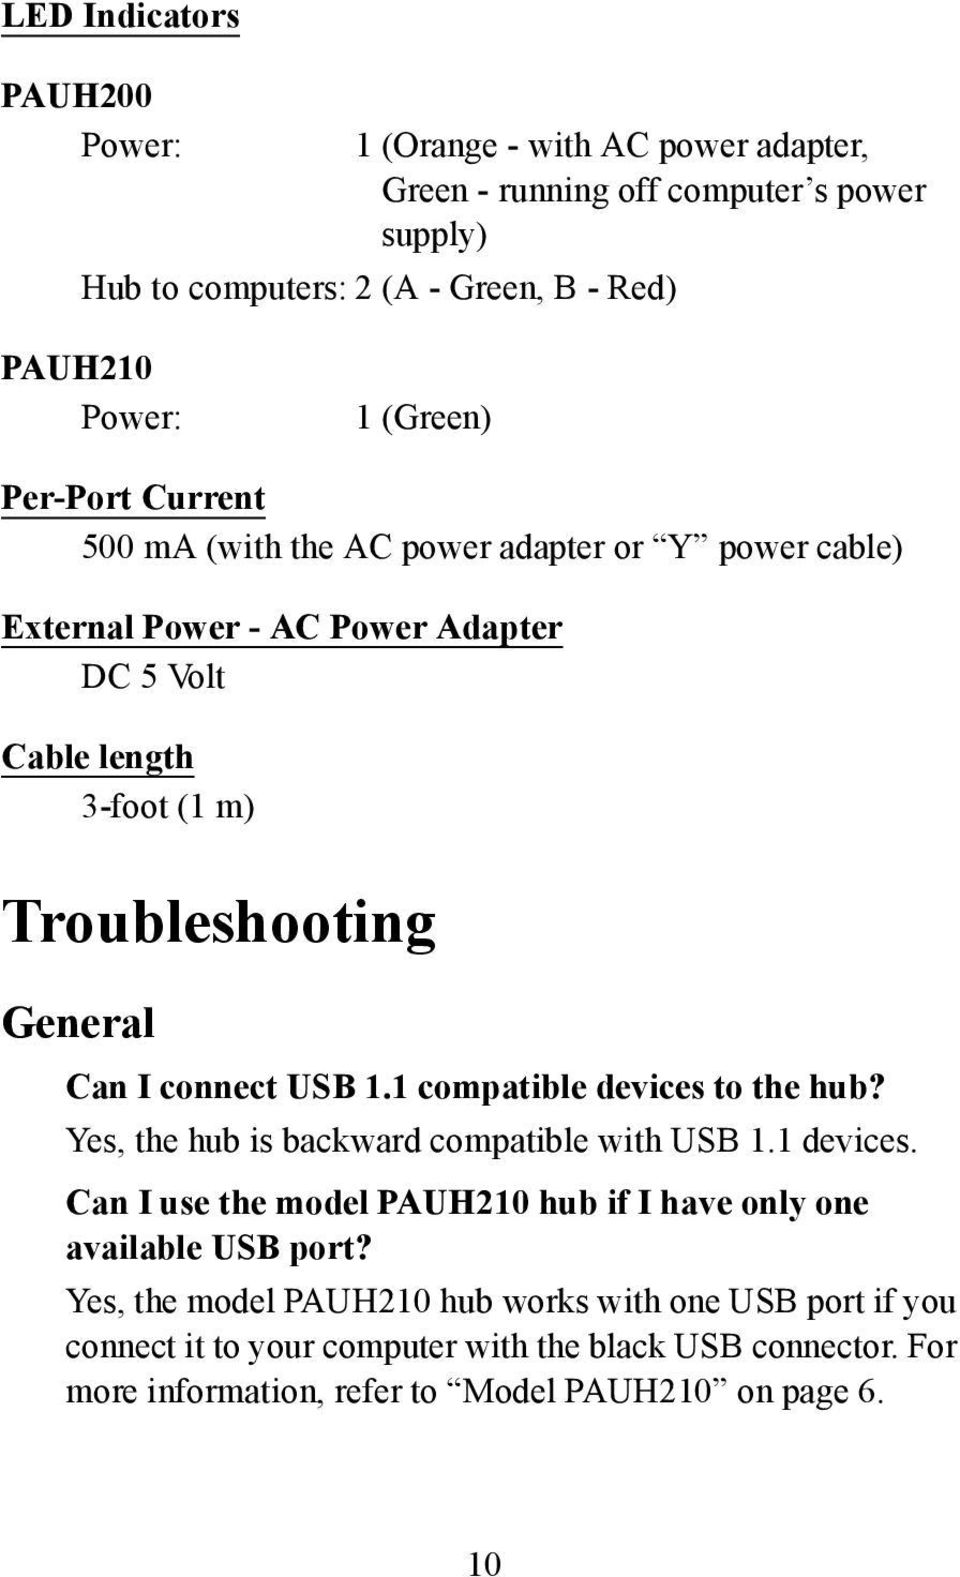 Can I connect USB 1.1 compatible devices to the hub? Yes, the hub is backward compatible with USB 1.1 devices.